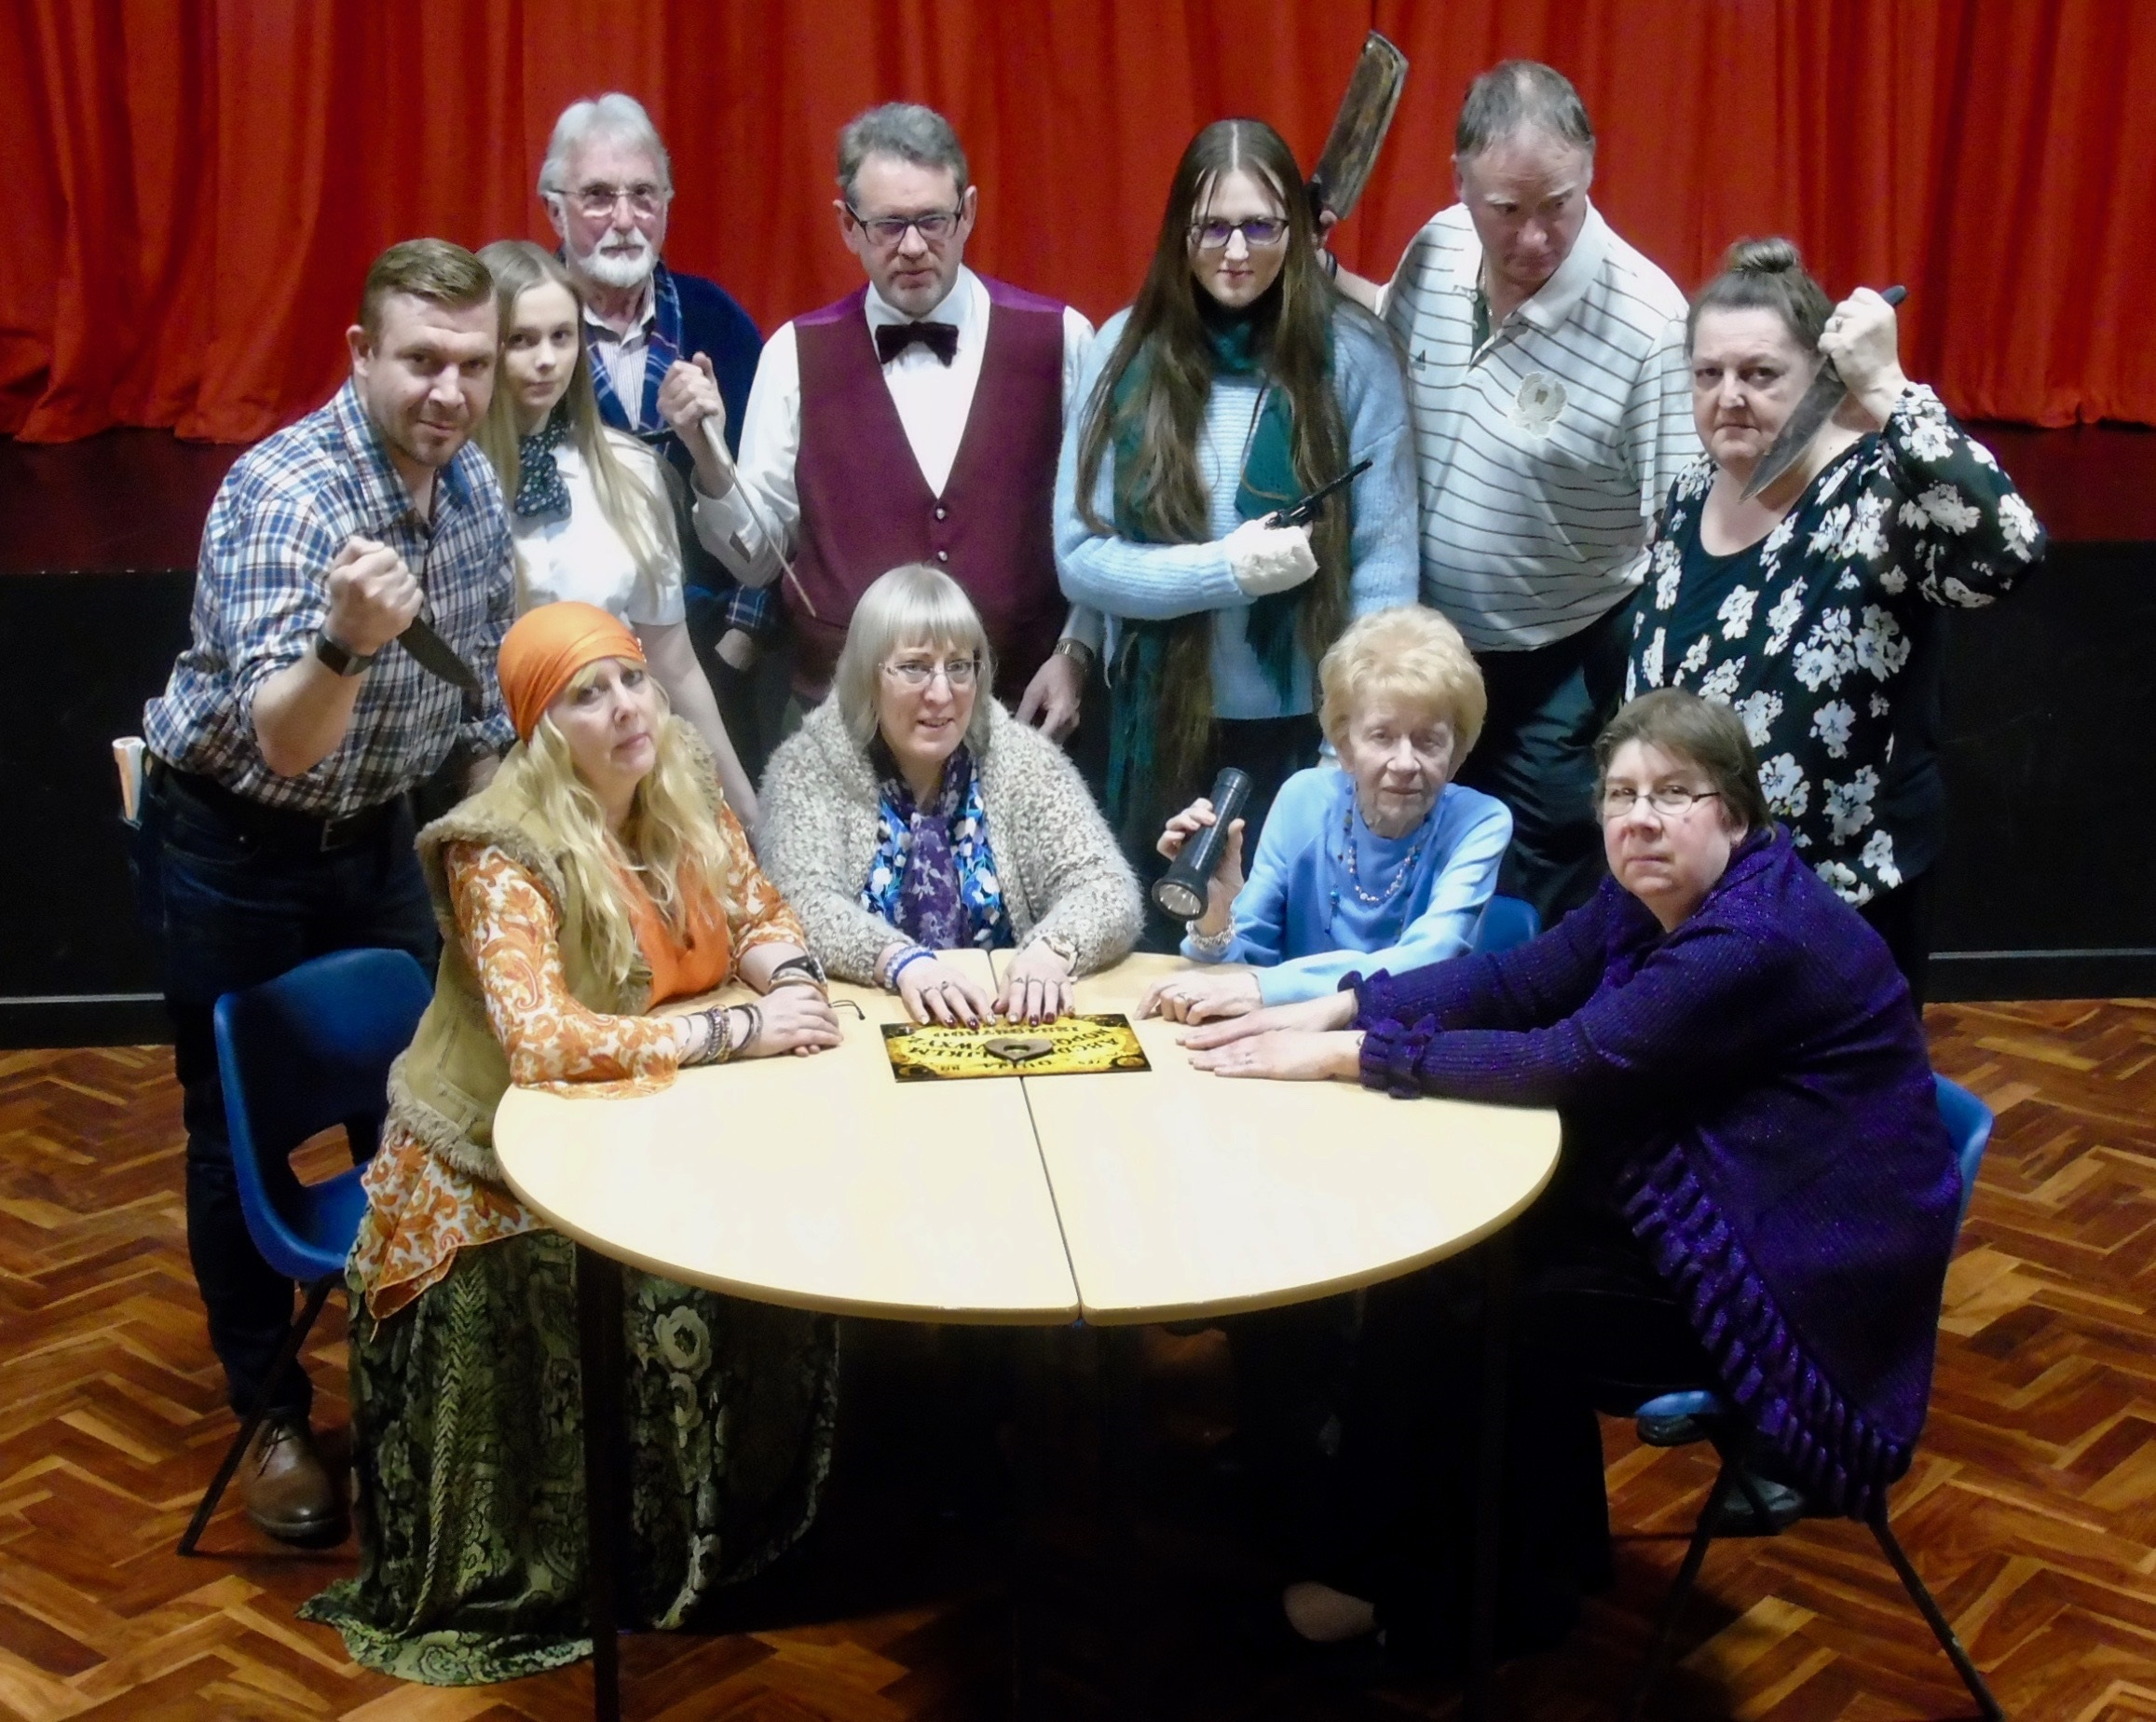 L- r - Nick Greaves, Jane Fleetwood, Megan Jones, Jim Fisher, Norma Whittaker, Dave Southall, Sarah Hickman, Jean Cotton, Pete Goldsmith, Jane Blest and Sandra Jones.